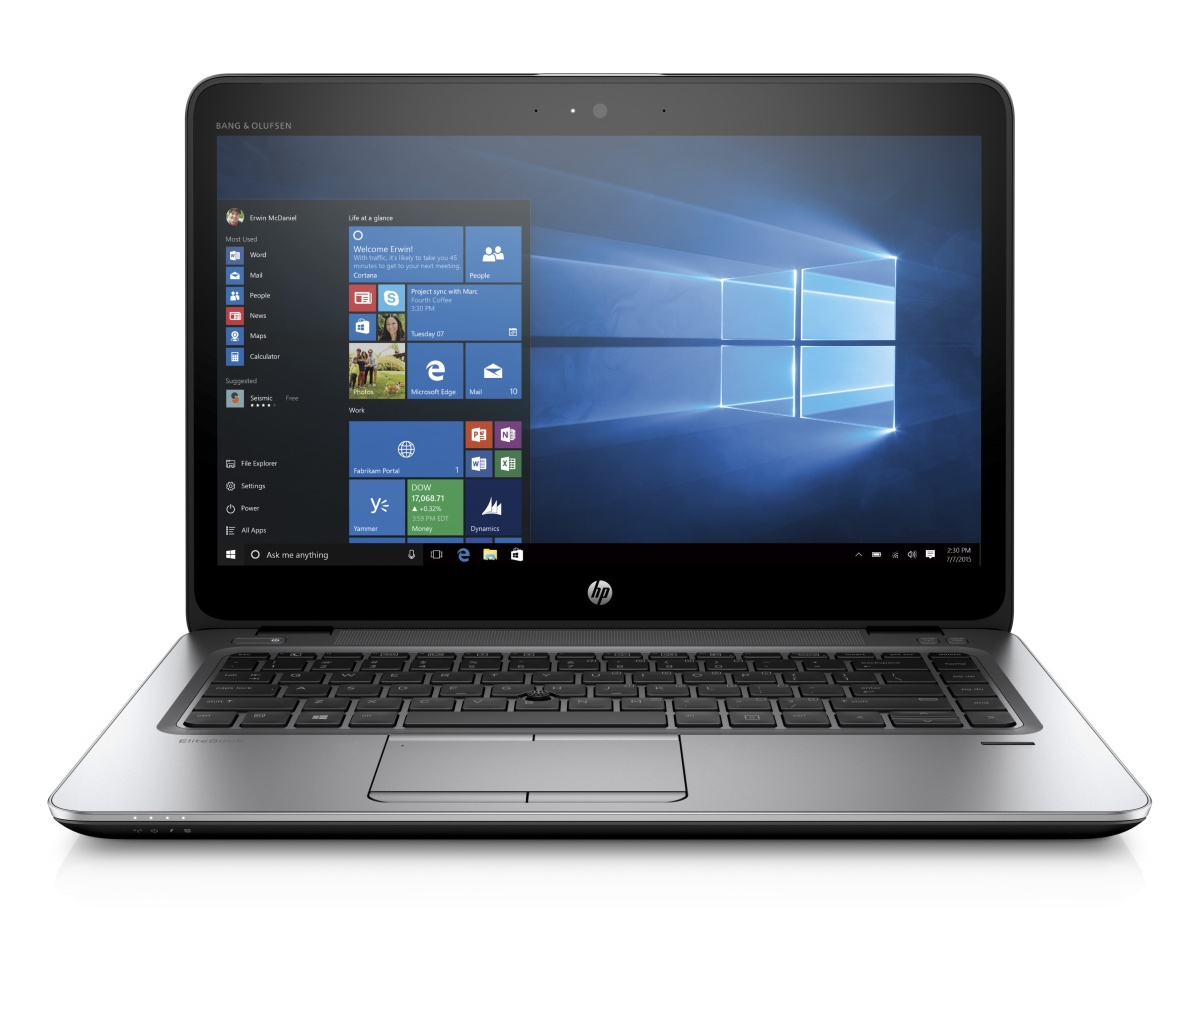 "HP EliteBook 840 G3 i5-6300U/4GB/500 GB /14"" HD / vPro / backlit keyb/ Win 10 Pro downgraded"